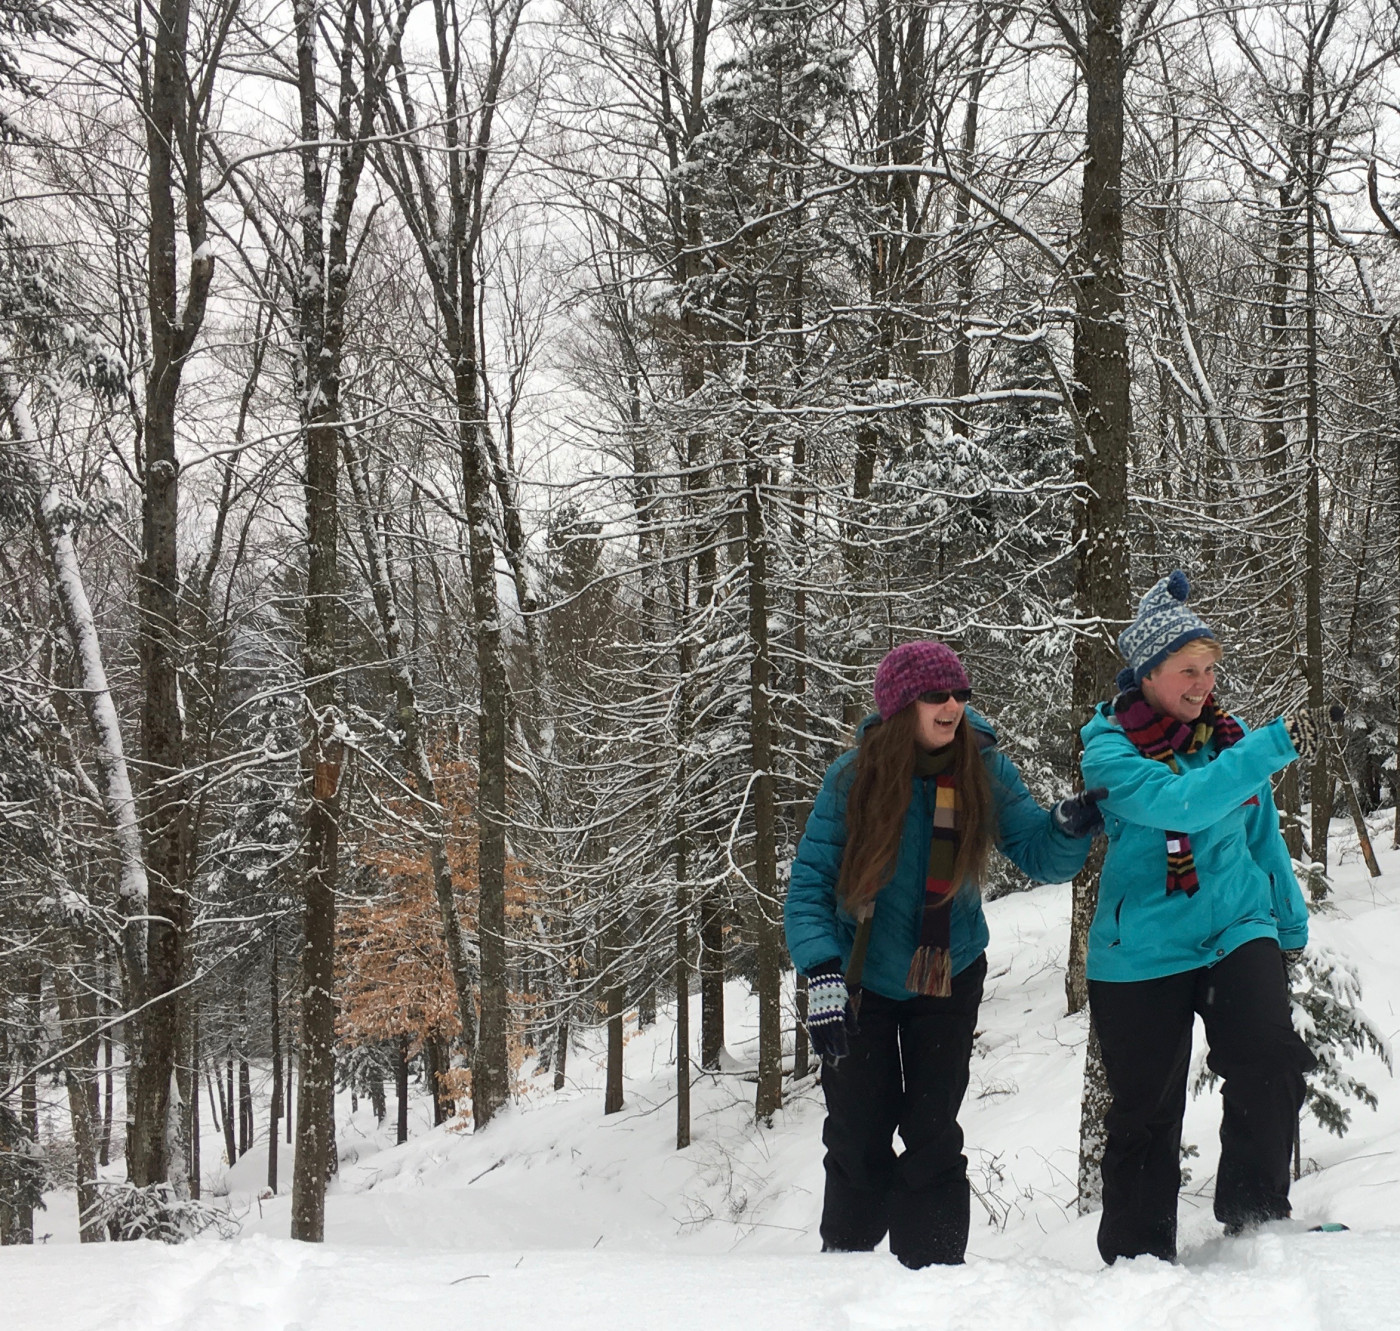 Two women snowshoeing on a trail